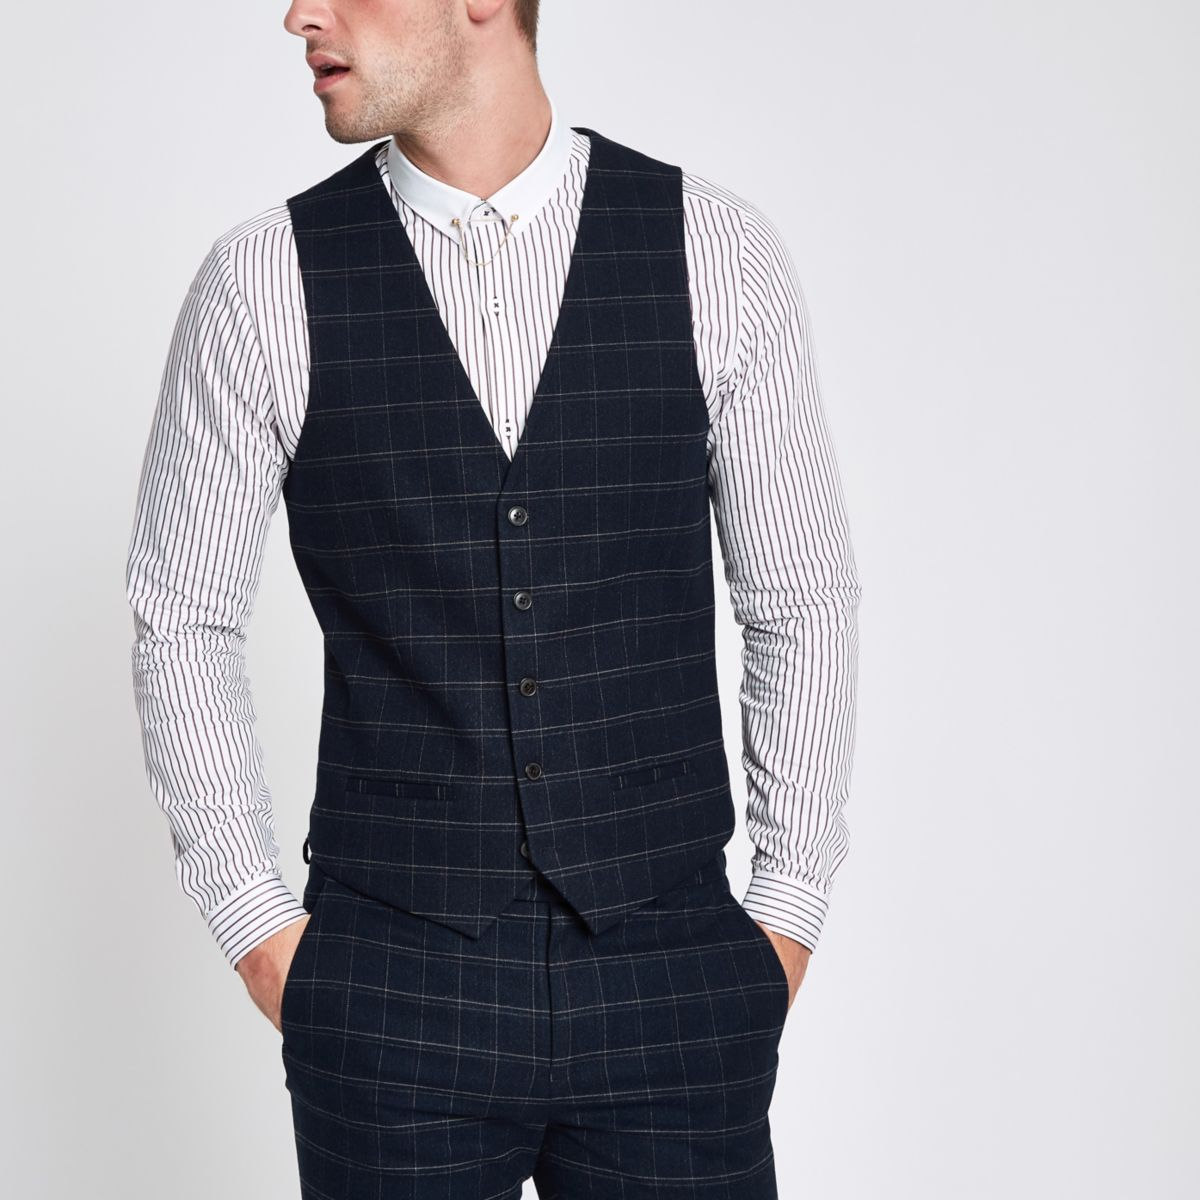 Navy window pane check slim fit vest